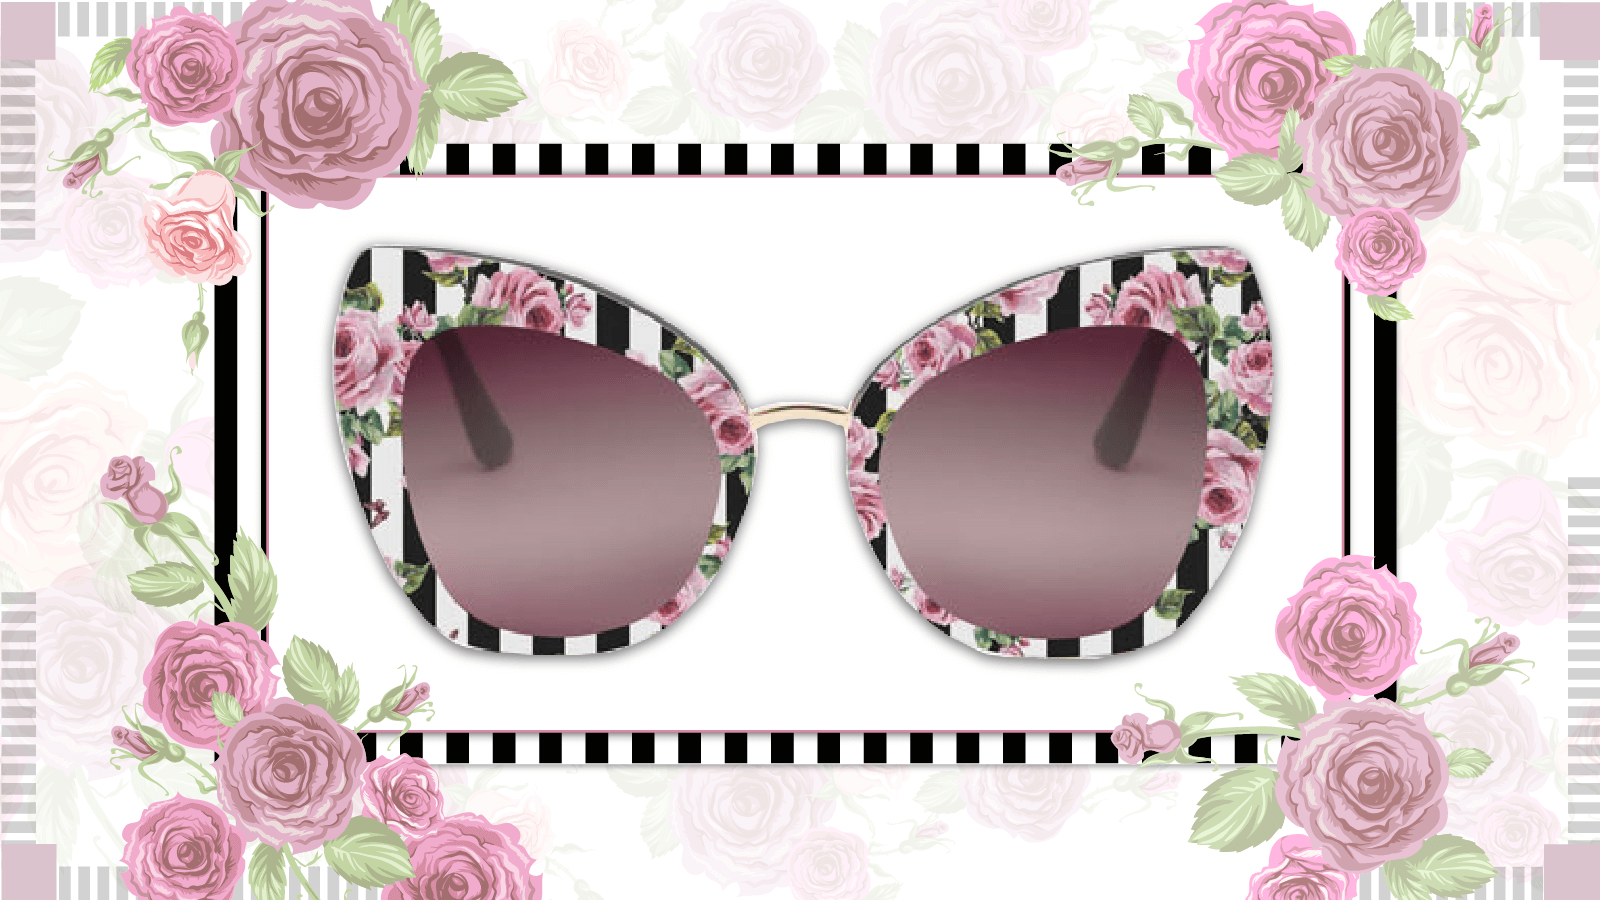 Dolce&Gabbana-Rose Collection